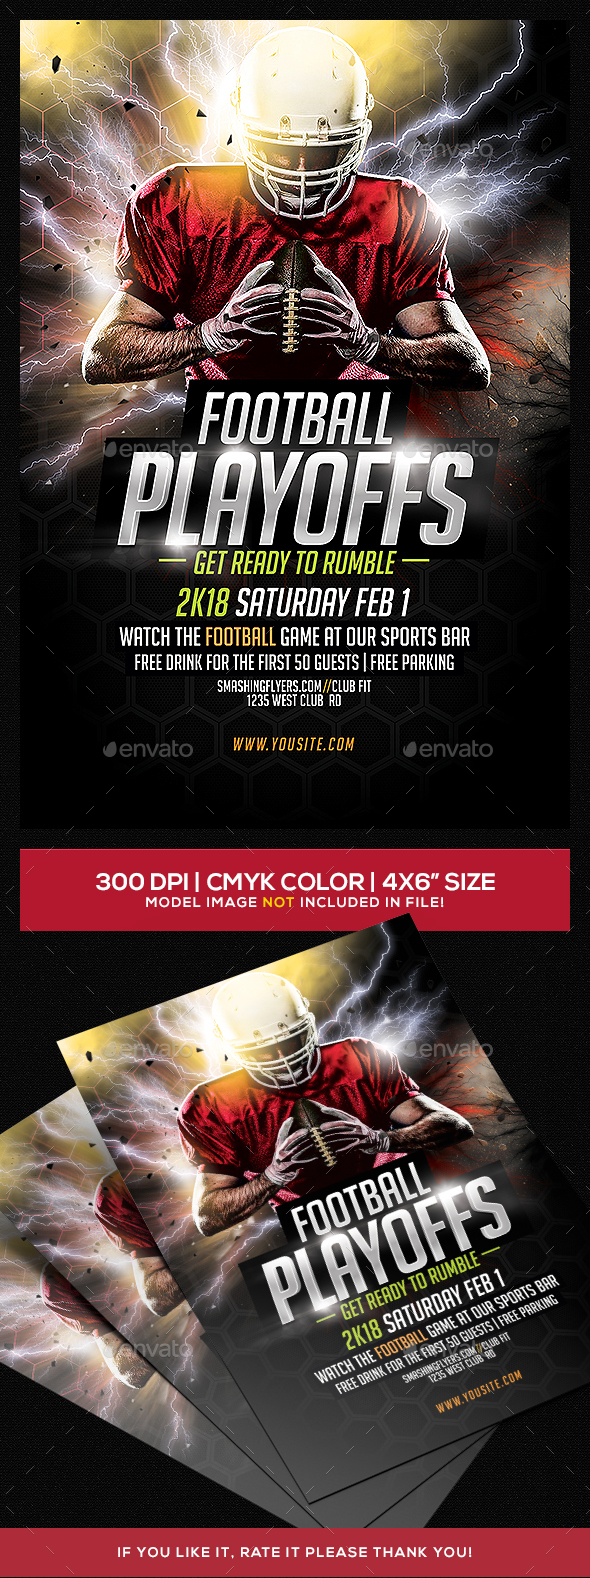 Football Playoffs Flyer Template - Sports Events